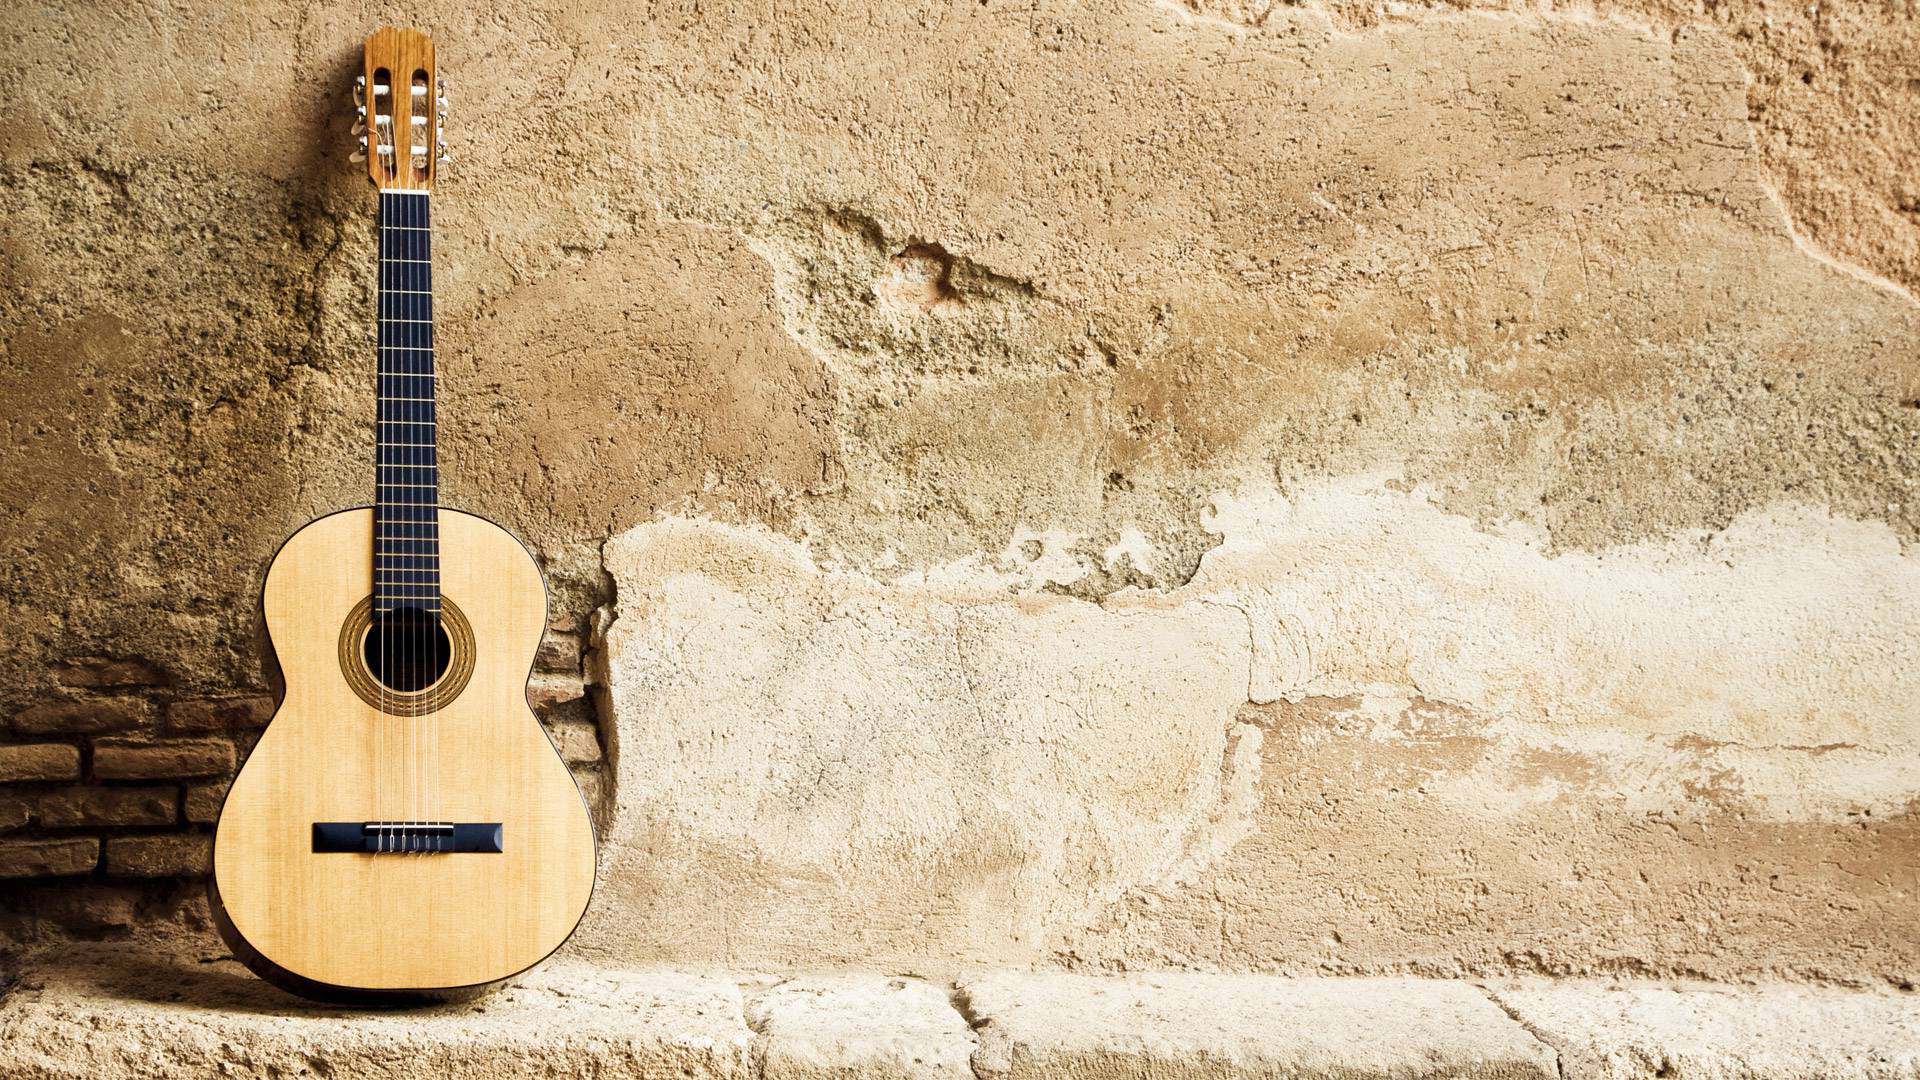 Acoustic-Guitar-High-Resolution-with-High-Resolution-1920x1080-px-MB-wallpaper-wpc5801952